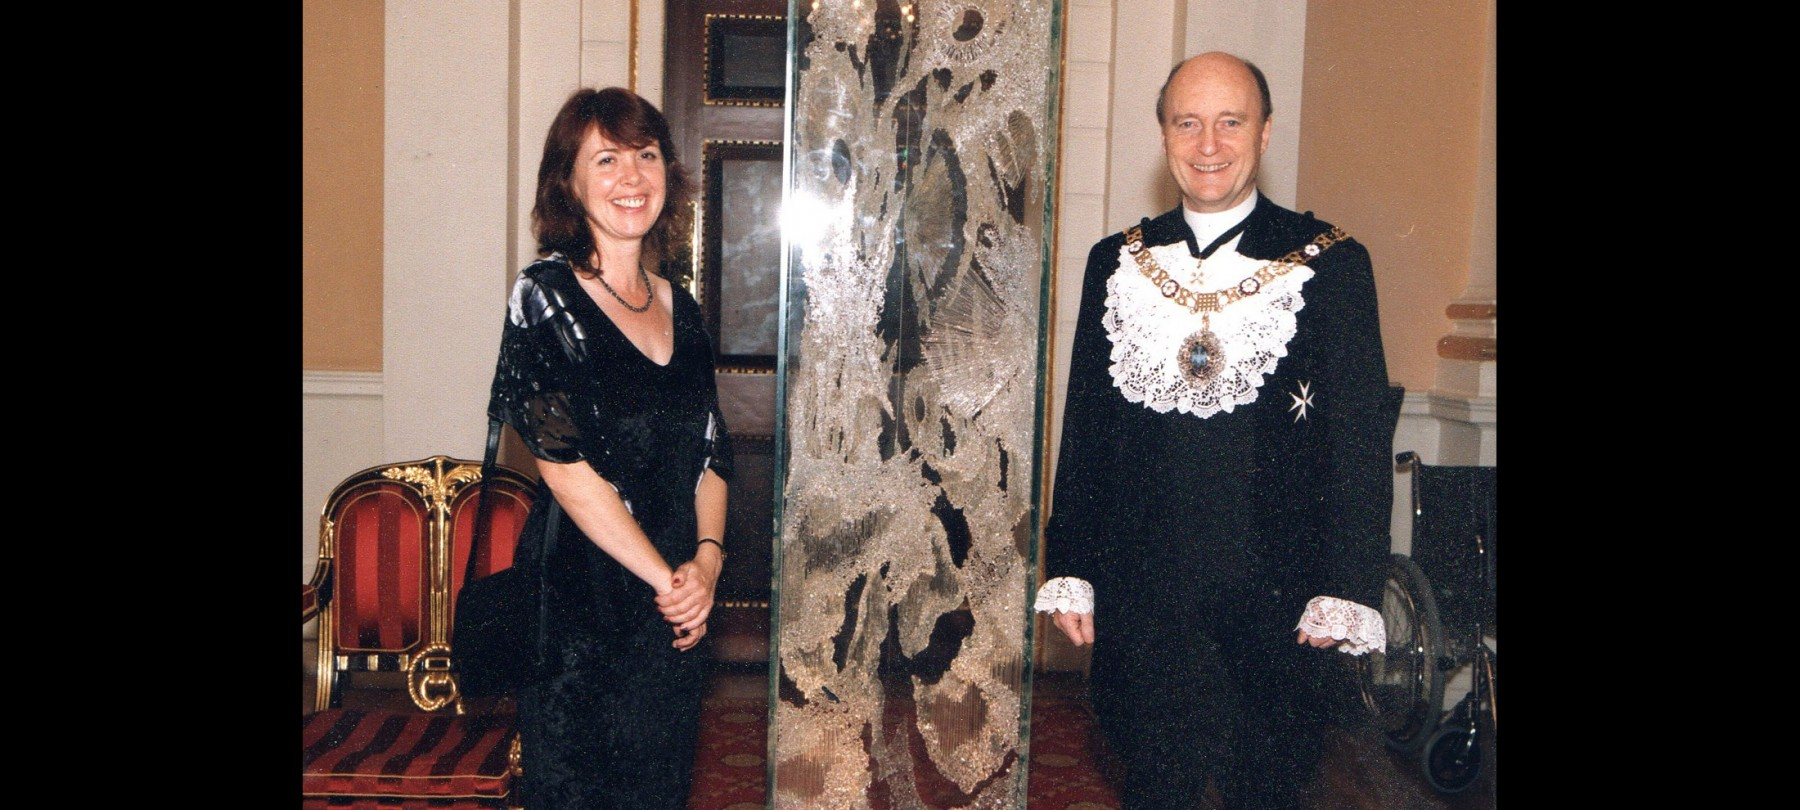 Karen Lawrence Receiving the Glass Sellers Award 2002